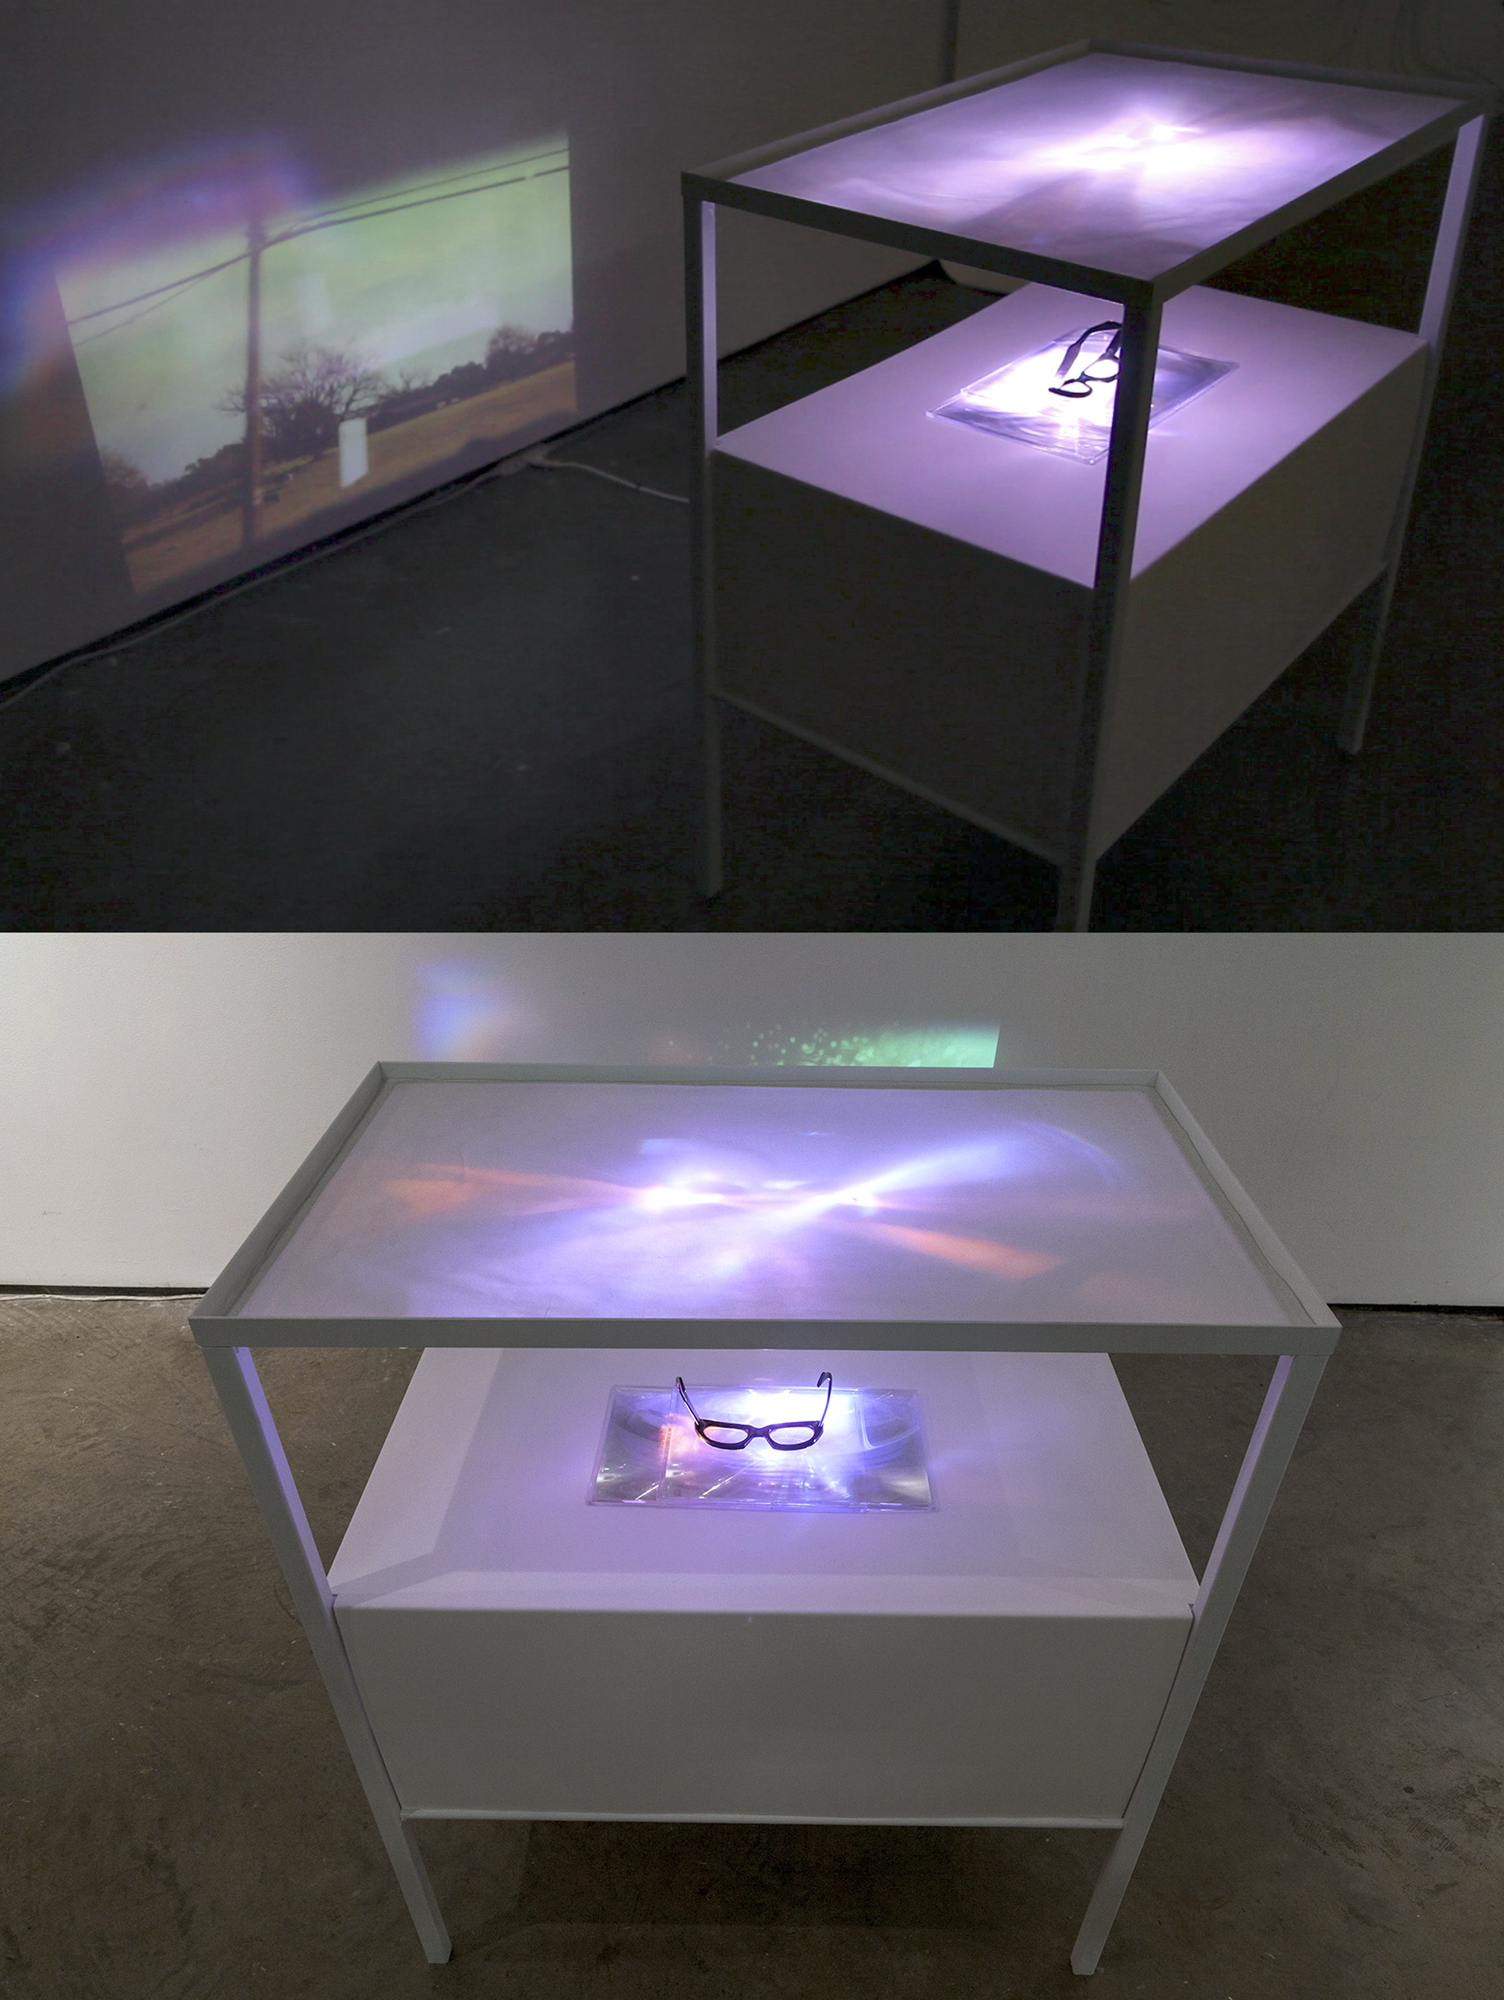 Train to Niebla , custom table sculpture housing a digital video projection. Video is projected onto angled mirrors (inside bottom shelf) that project the video both onto the facing wall and up through the magnification of my father's reading glasses onto a tabletop of frosted plexiglass. The image seen on the plexiglass is refracted into spiraling points of light, an abstraction of what can be seen clearly on the wall. Digital projector, steel table, sintra, frosted plexiglass, fresnel lens, fathers glasses. Dimensions variable. 2012. Collaboration with Carlos Vela Prado